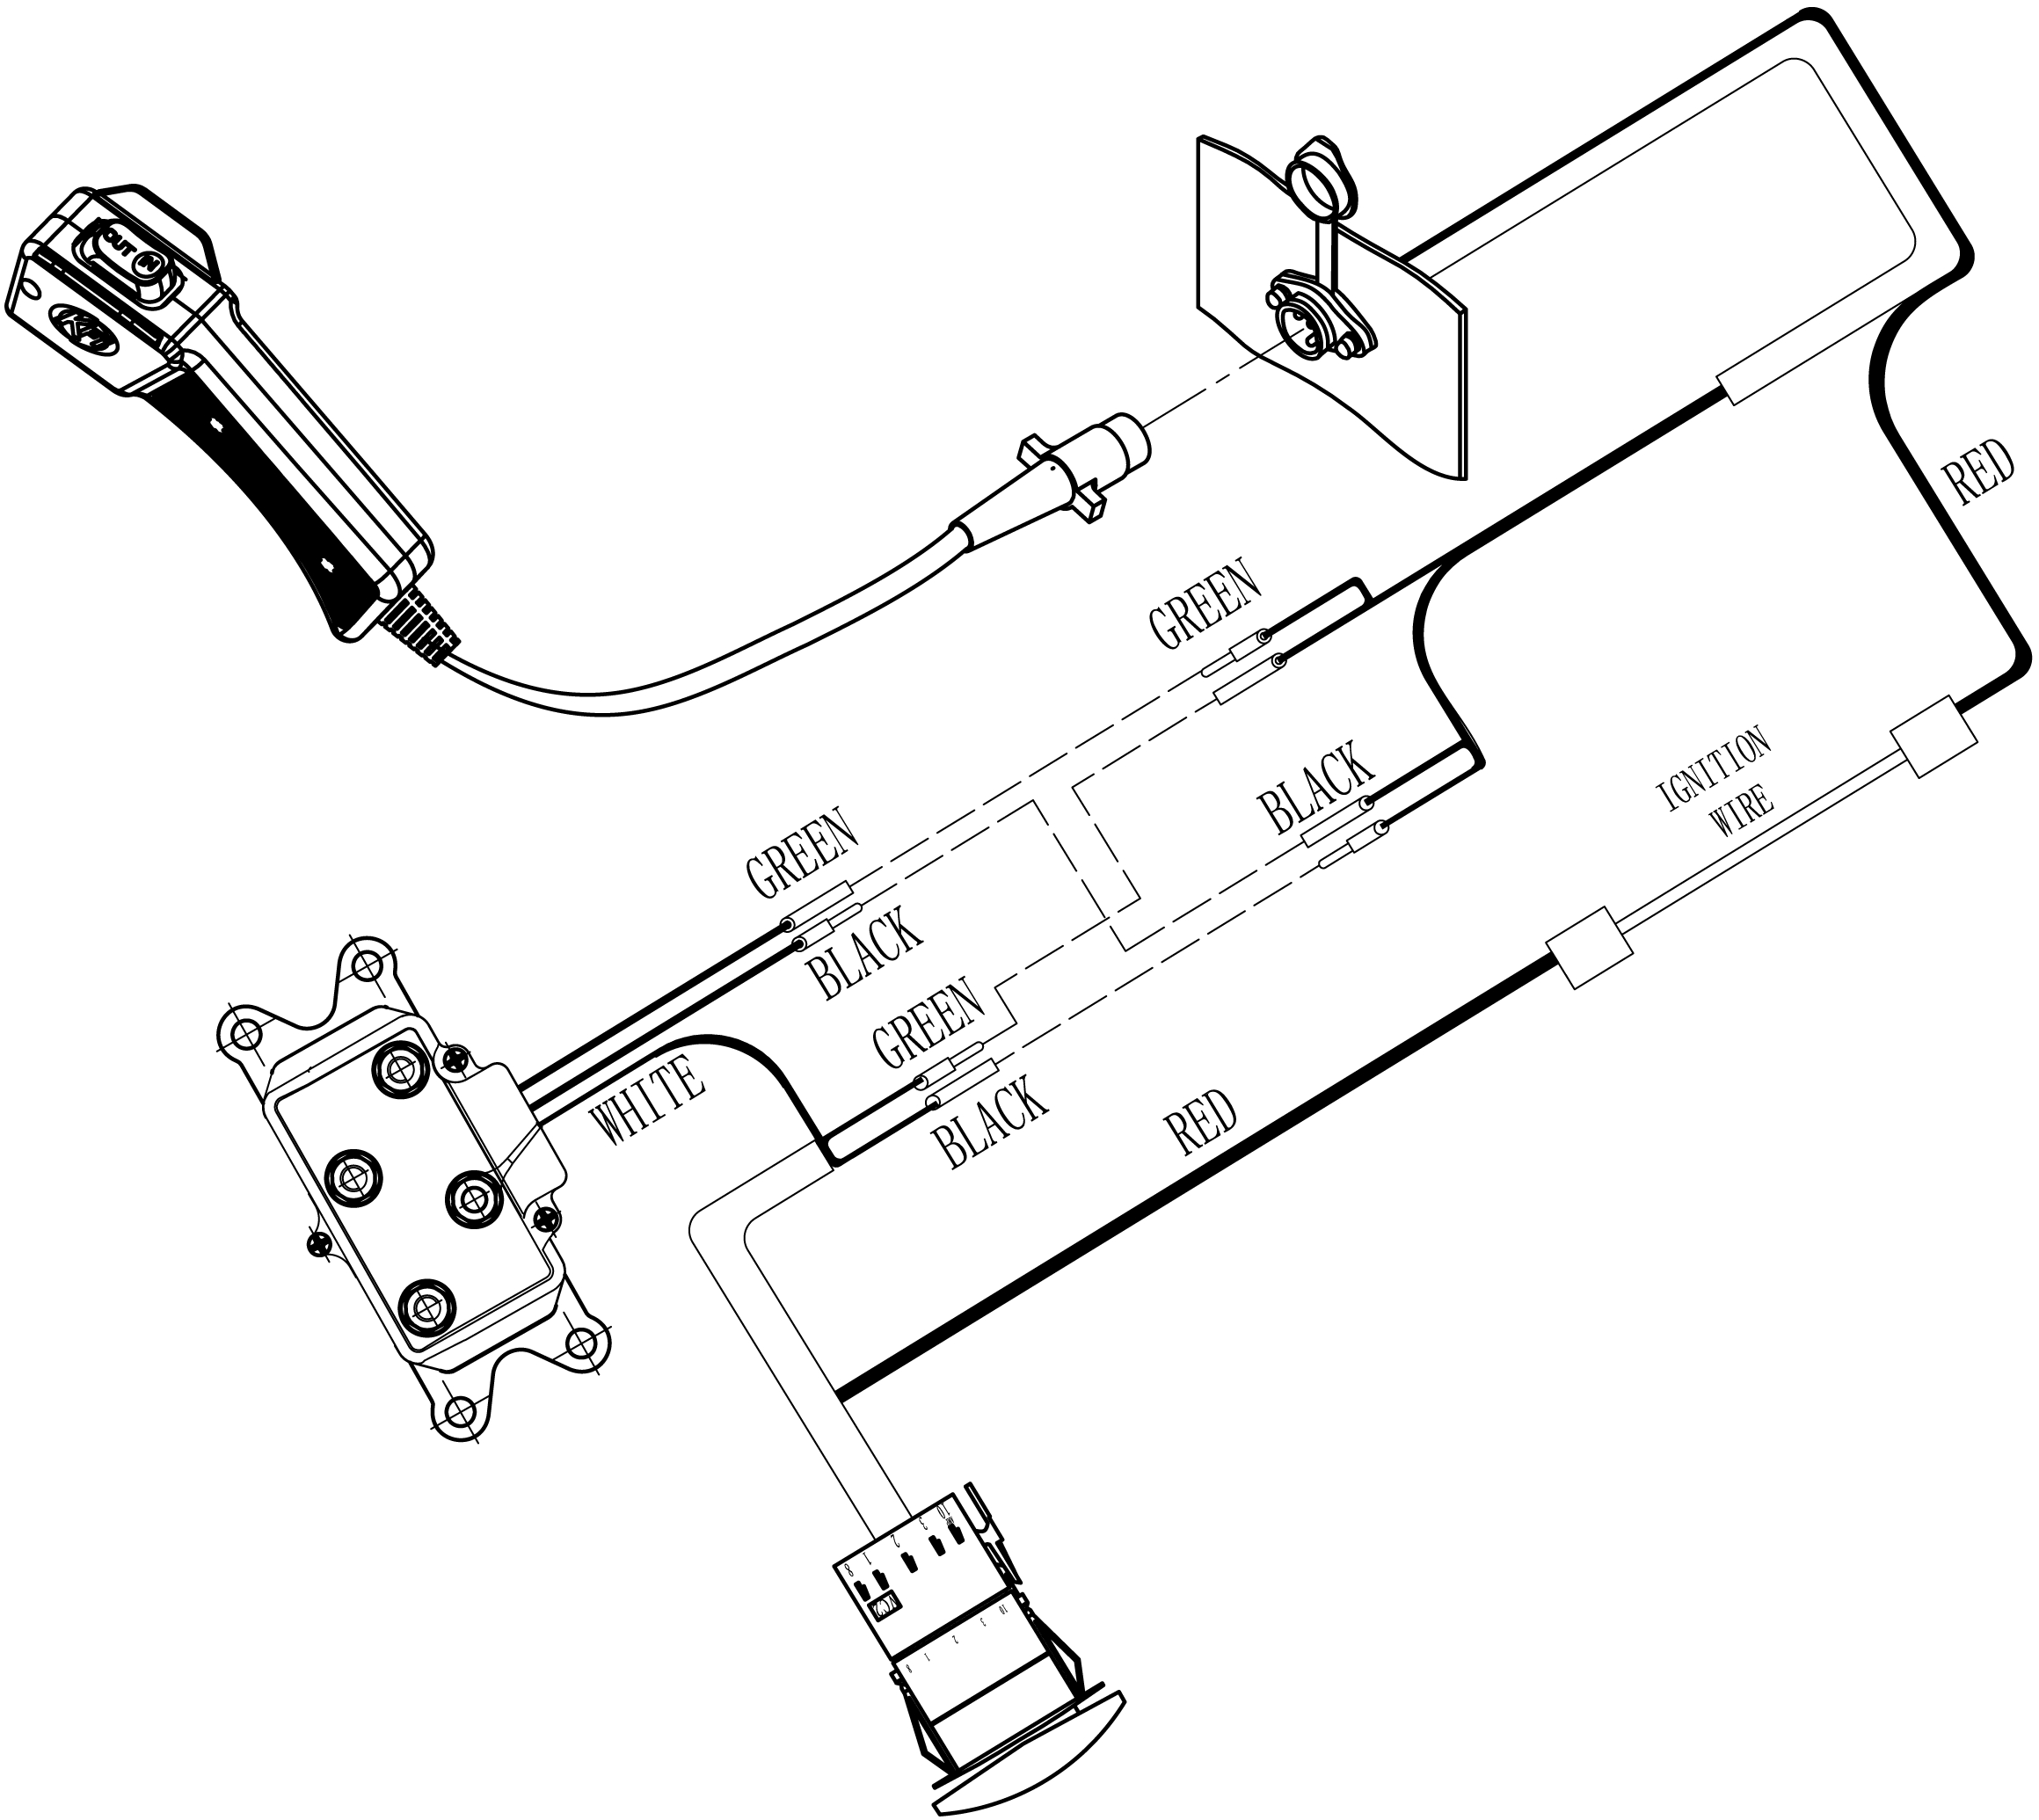 Badland 12000 Winch Wiring Diagram | Wiring Diagram